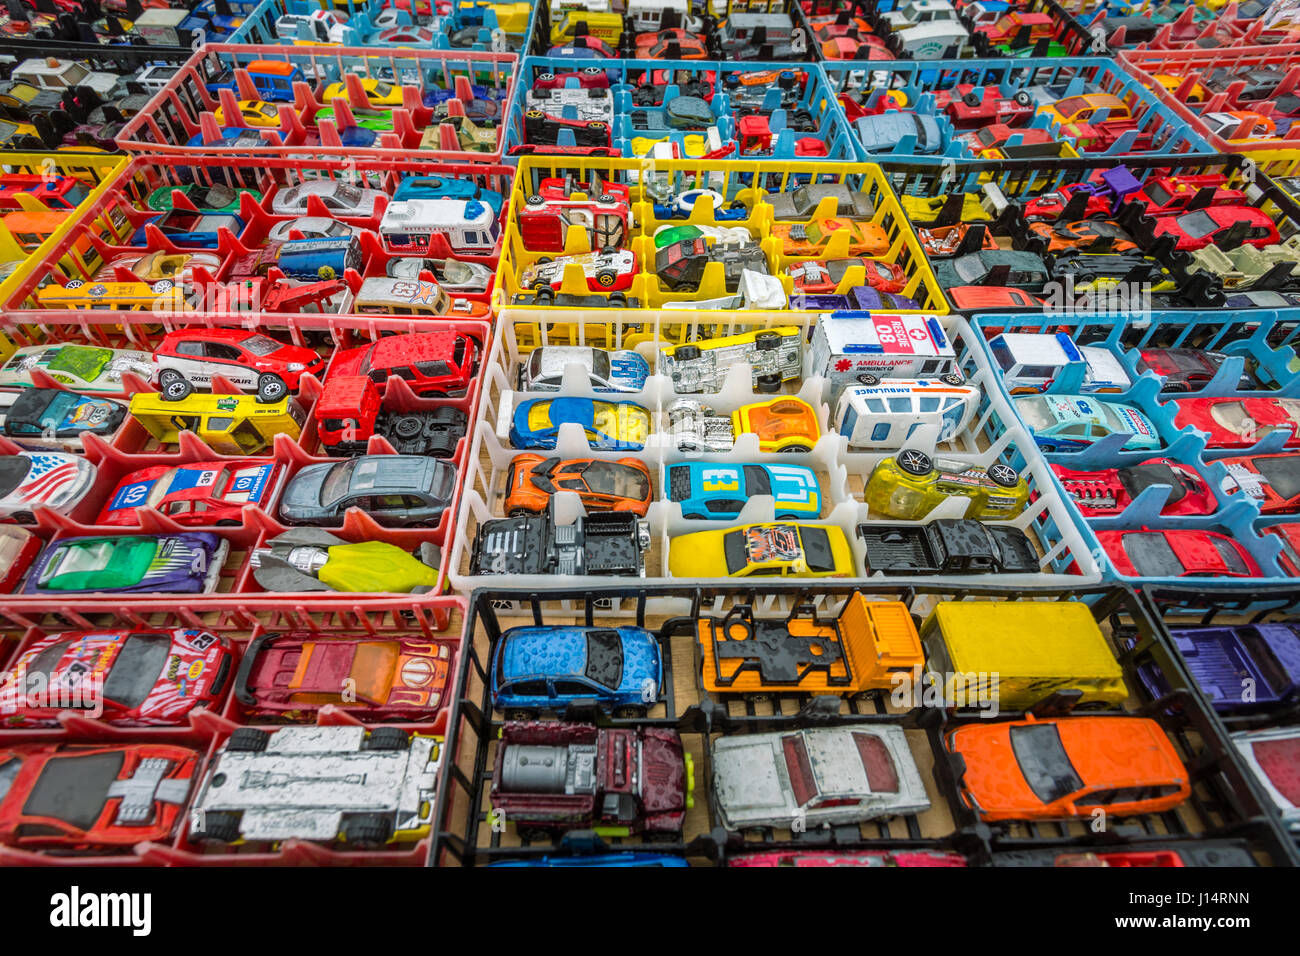 Boxes of toy cars autos on sales in a market - Stock Image